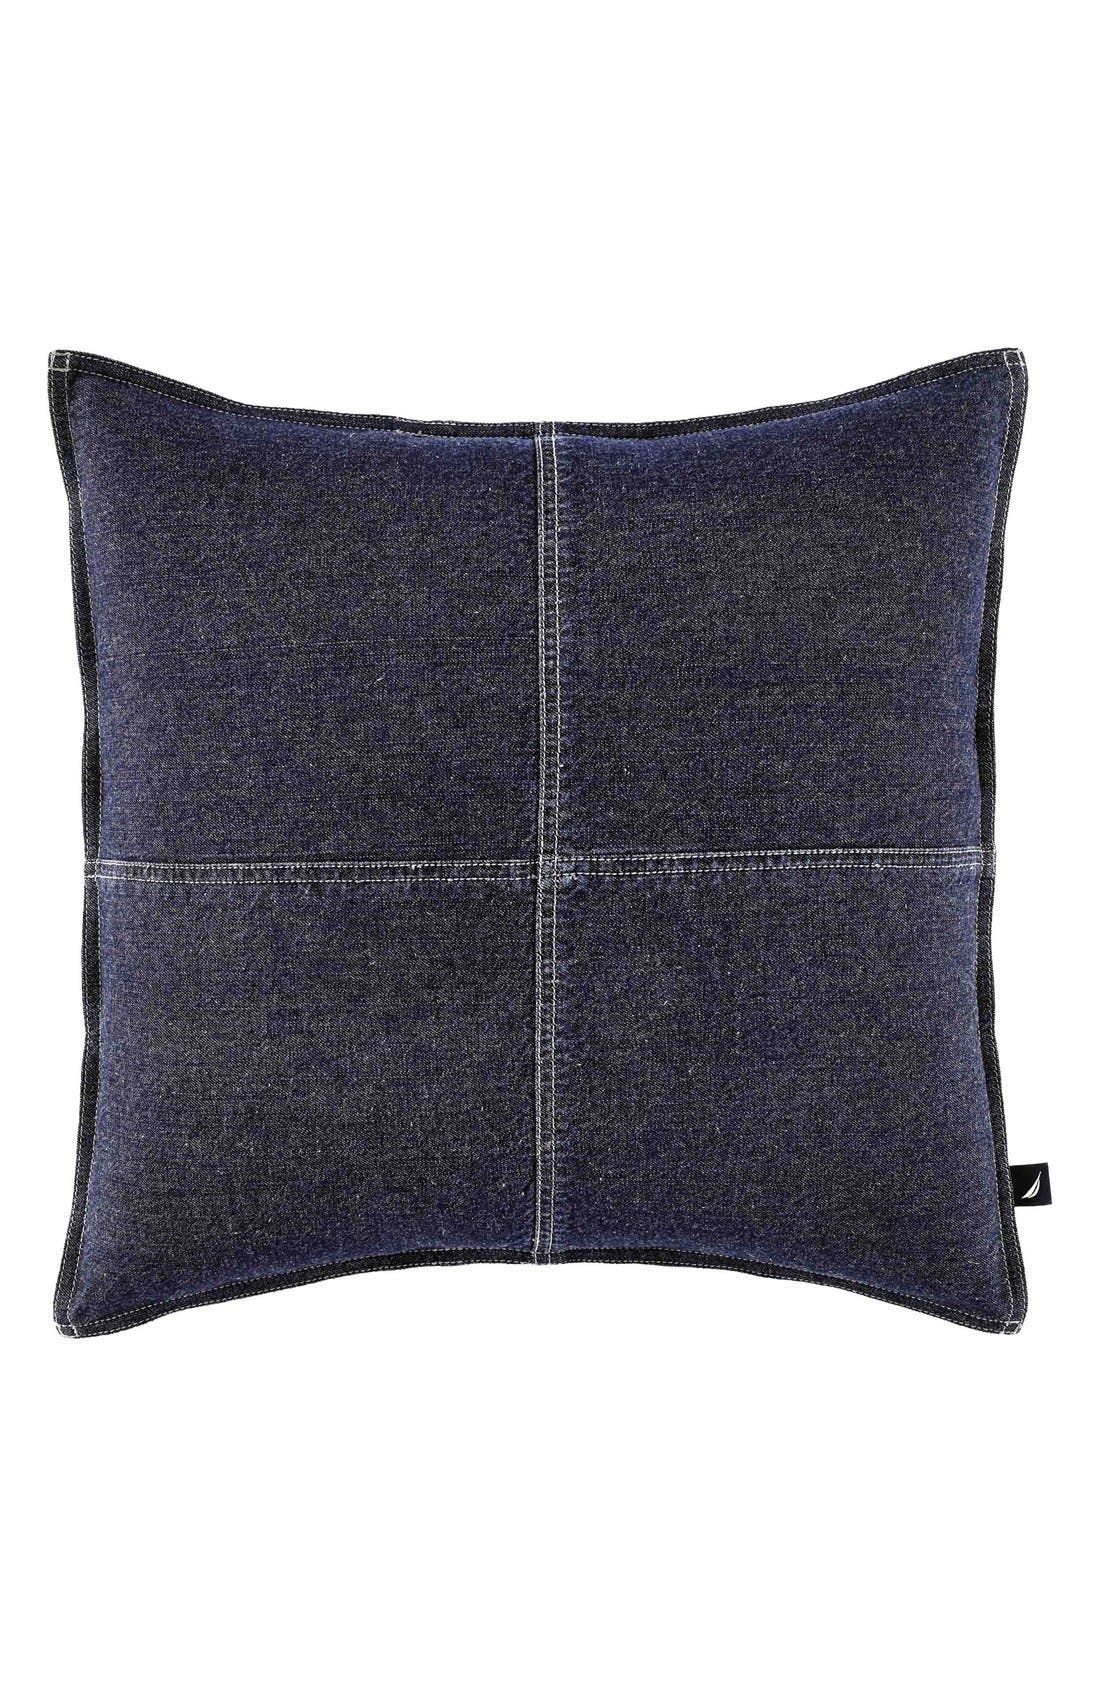 'Seaward' Pillow,                         Main,                         color, 408